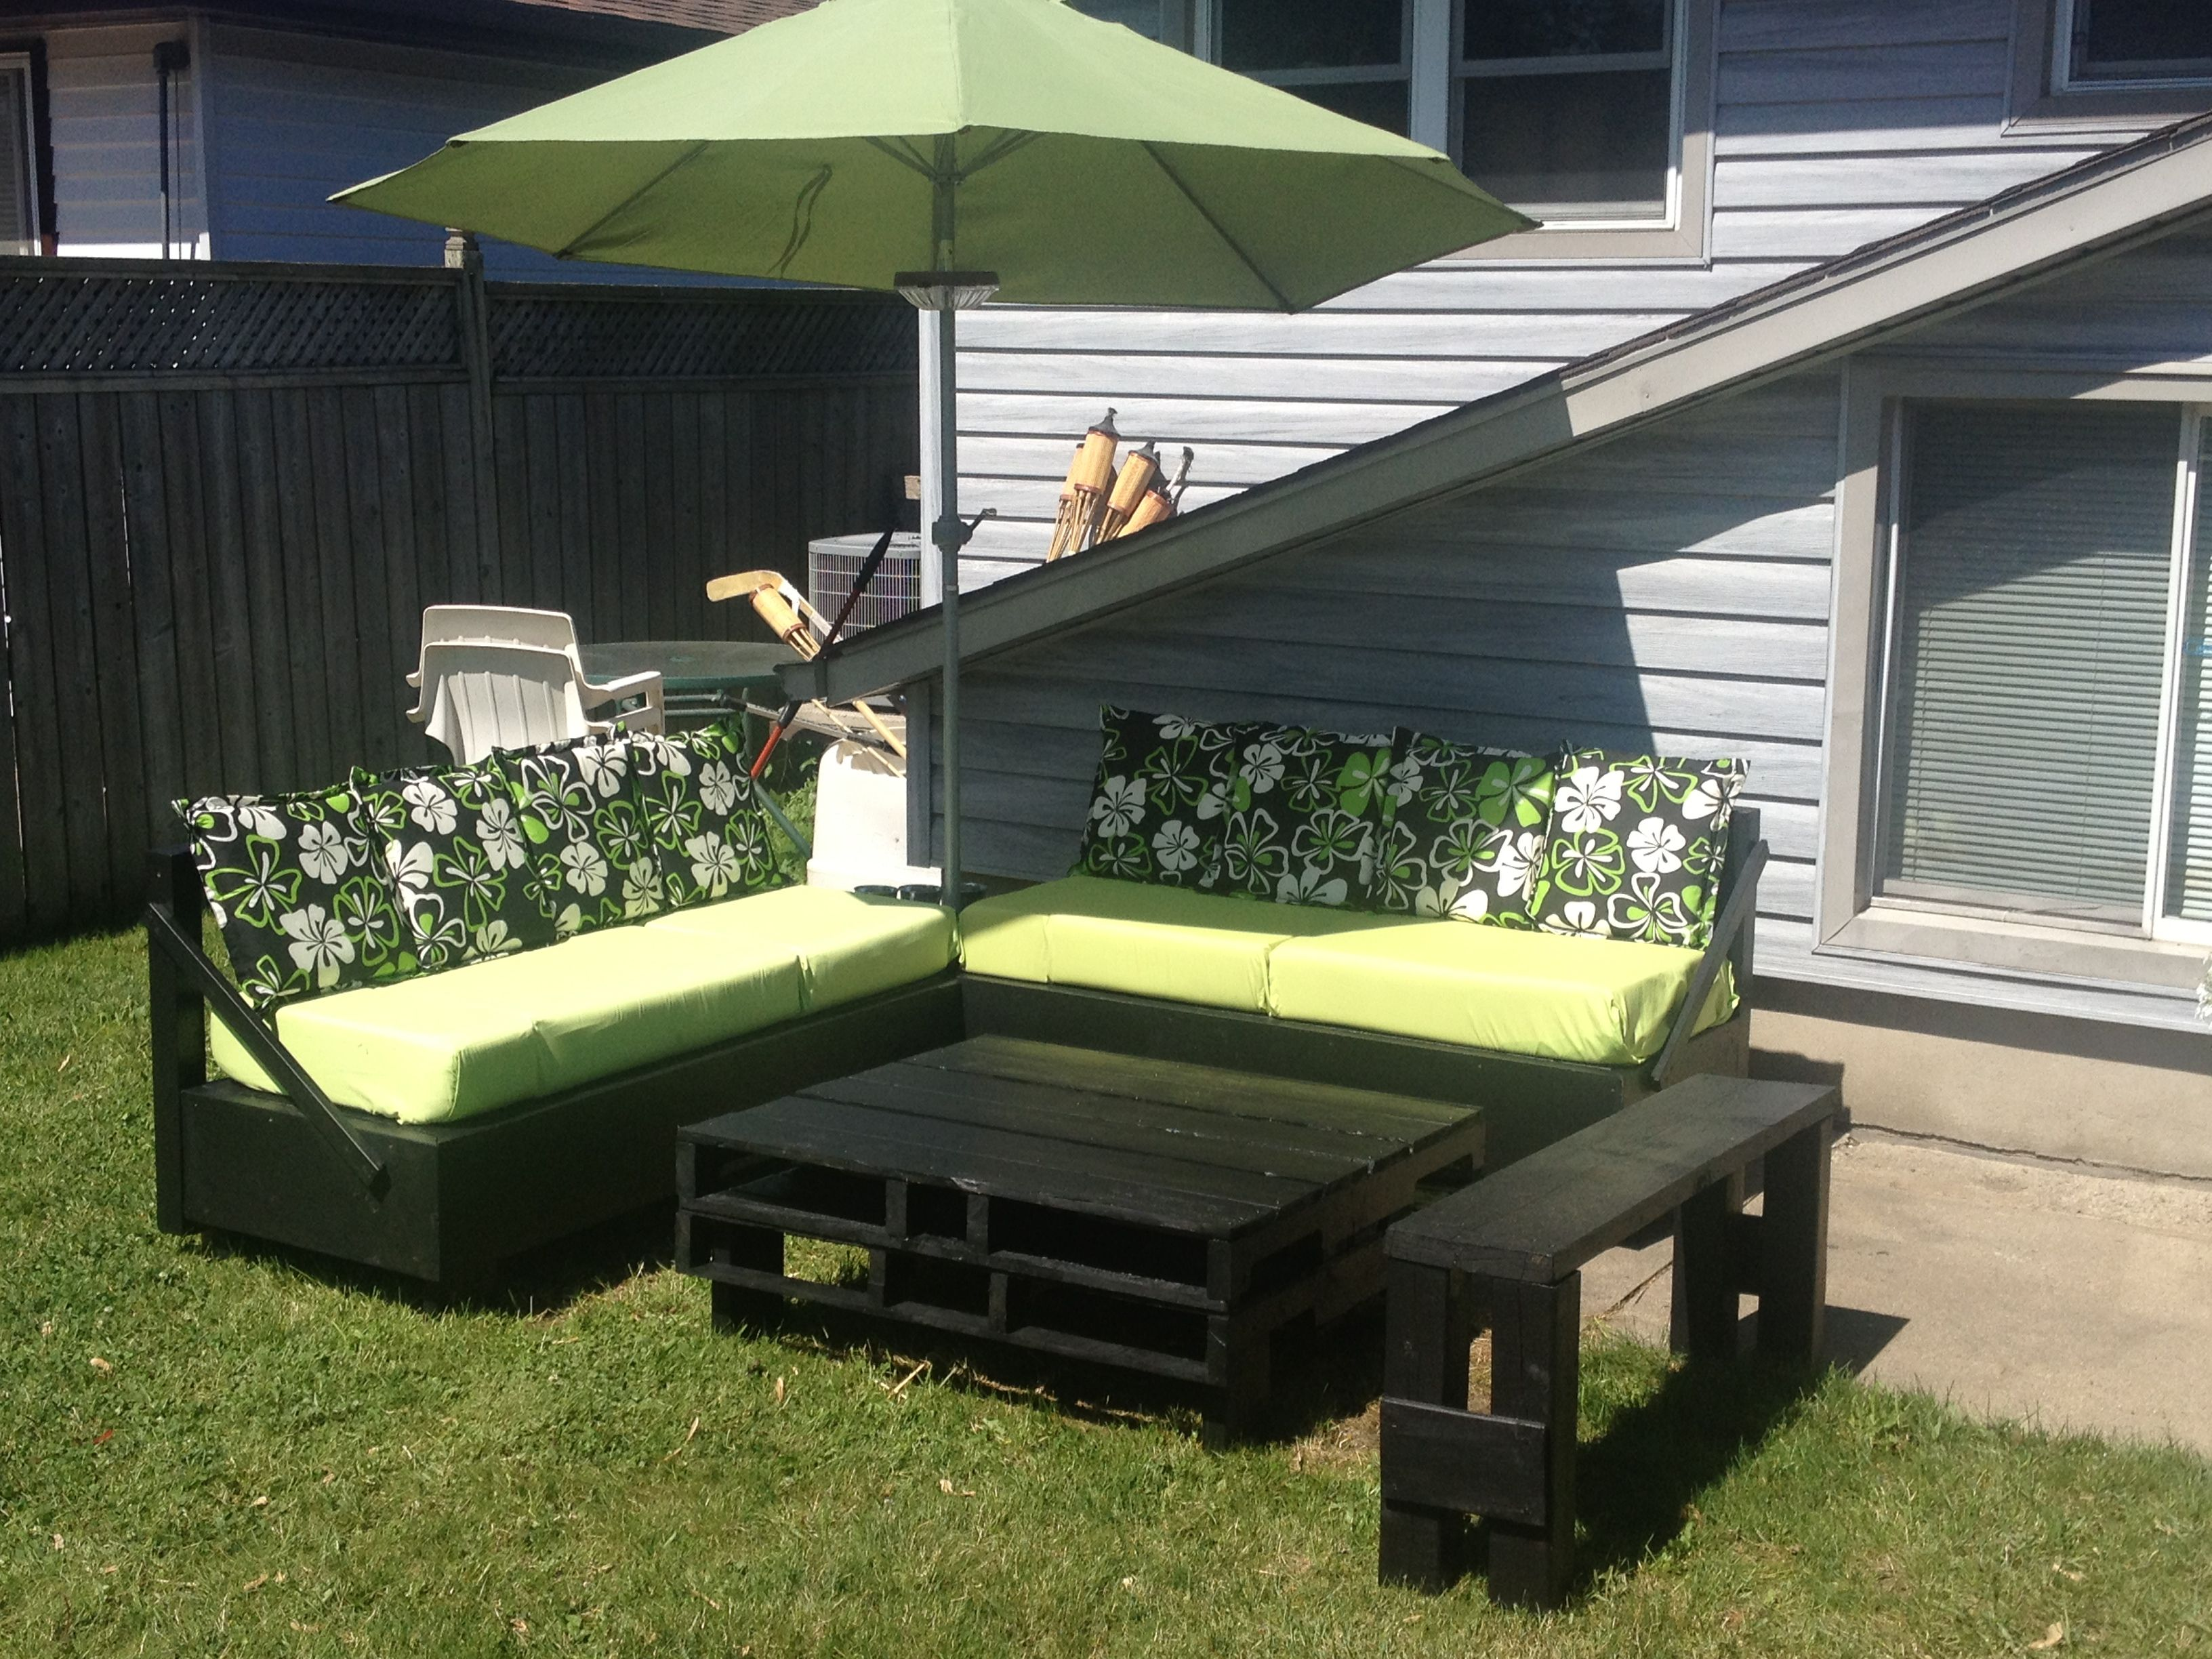 Homemade patio furniture my husband and i made a lot of work but well